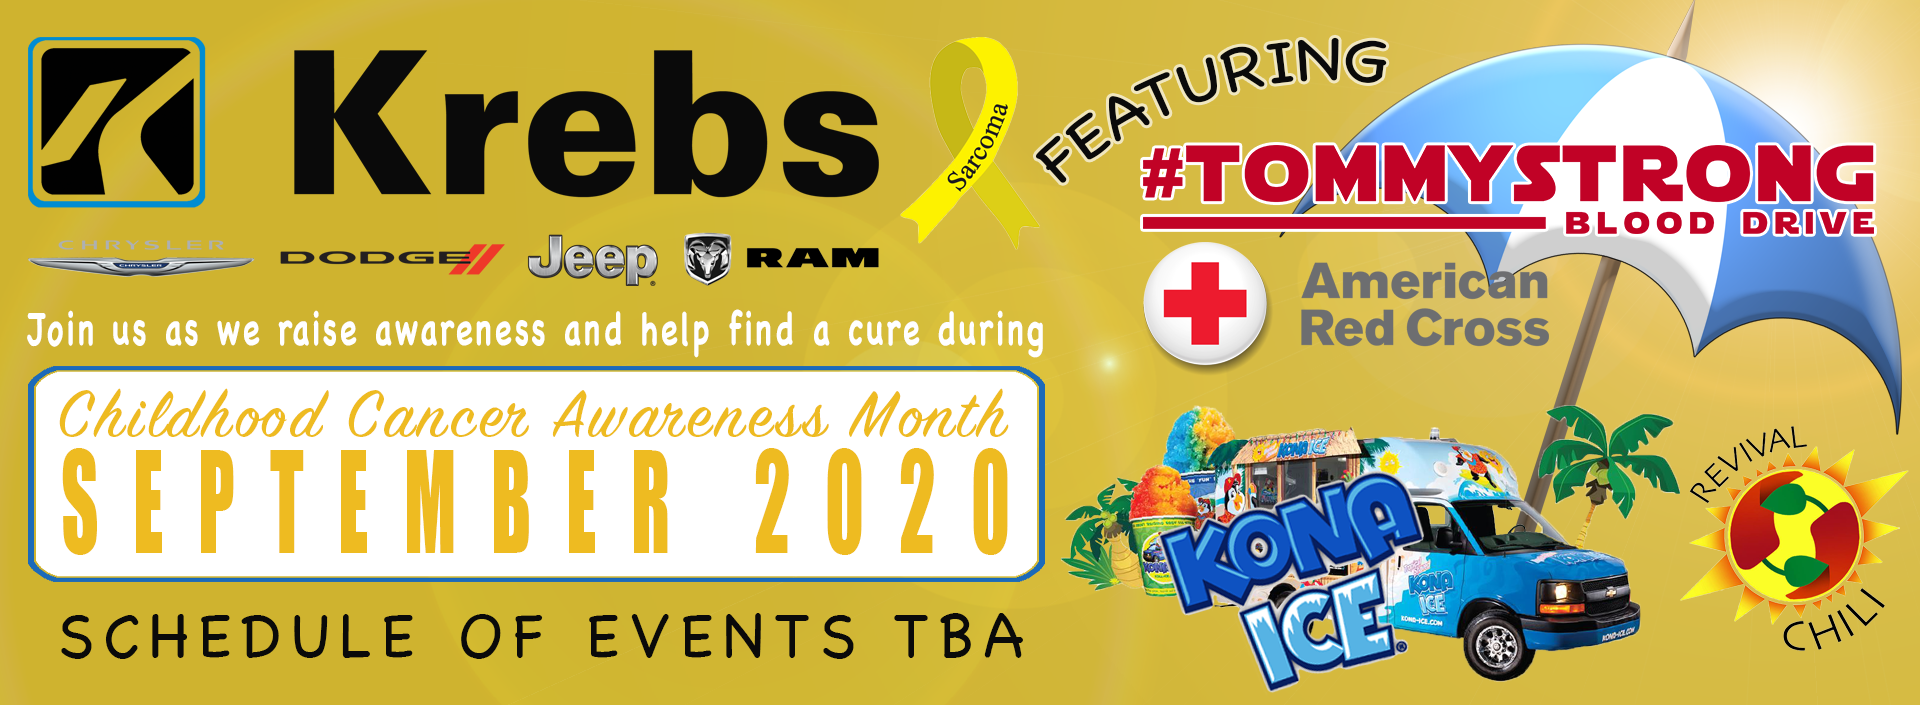 Childhood Cancer Awareness Month September 2020